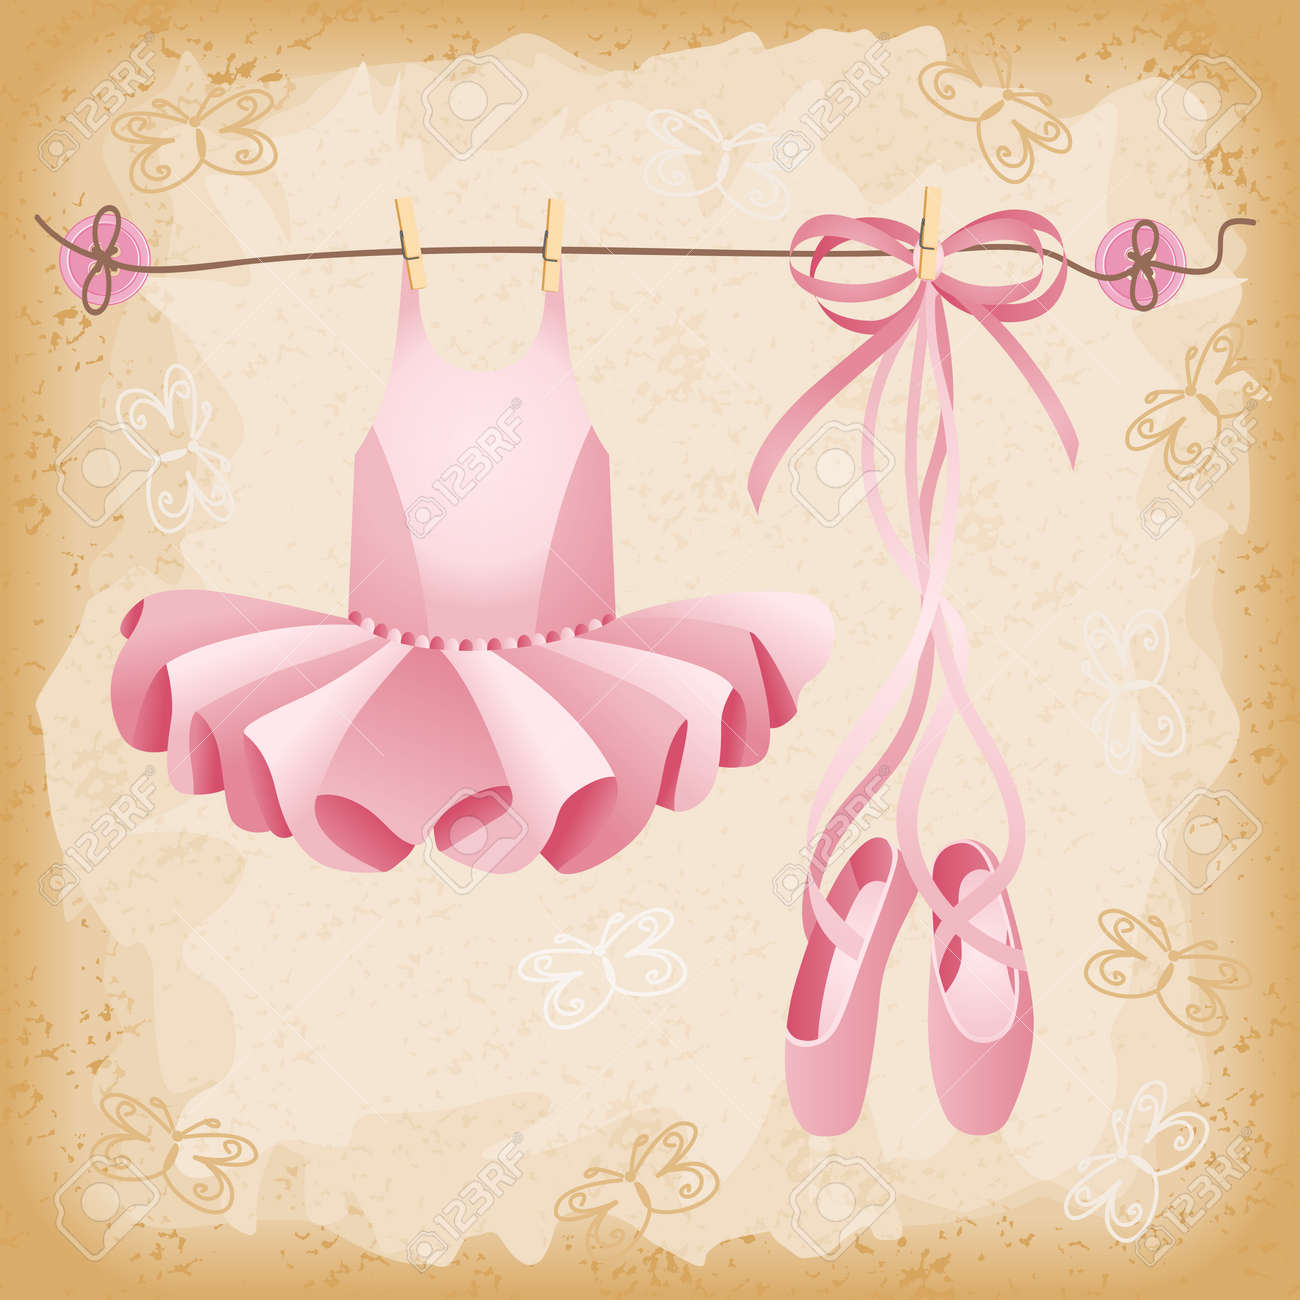 Pink ballet slippers and tutu background - 49745193